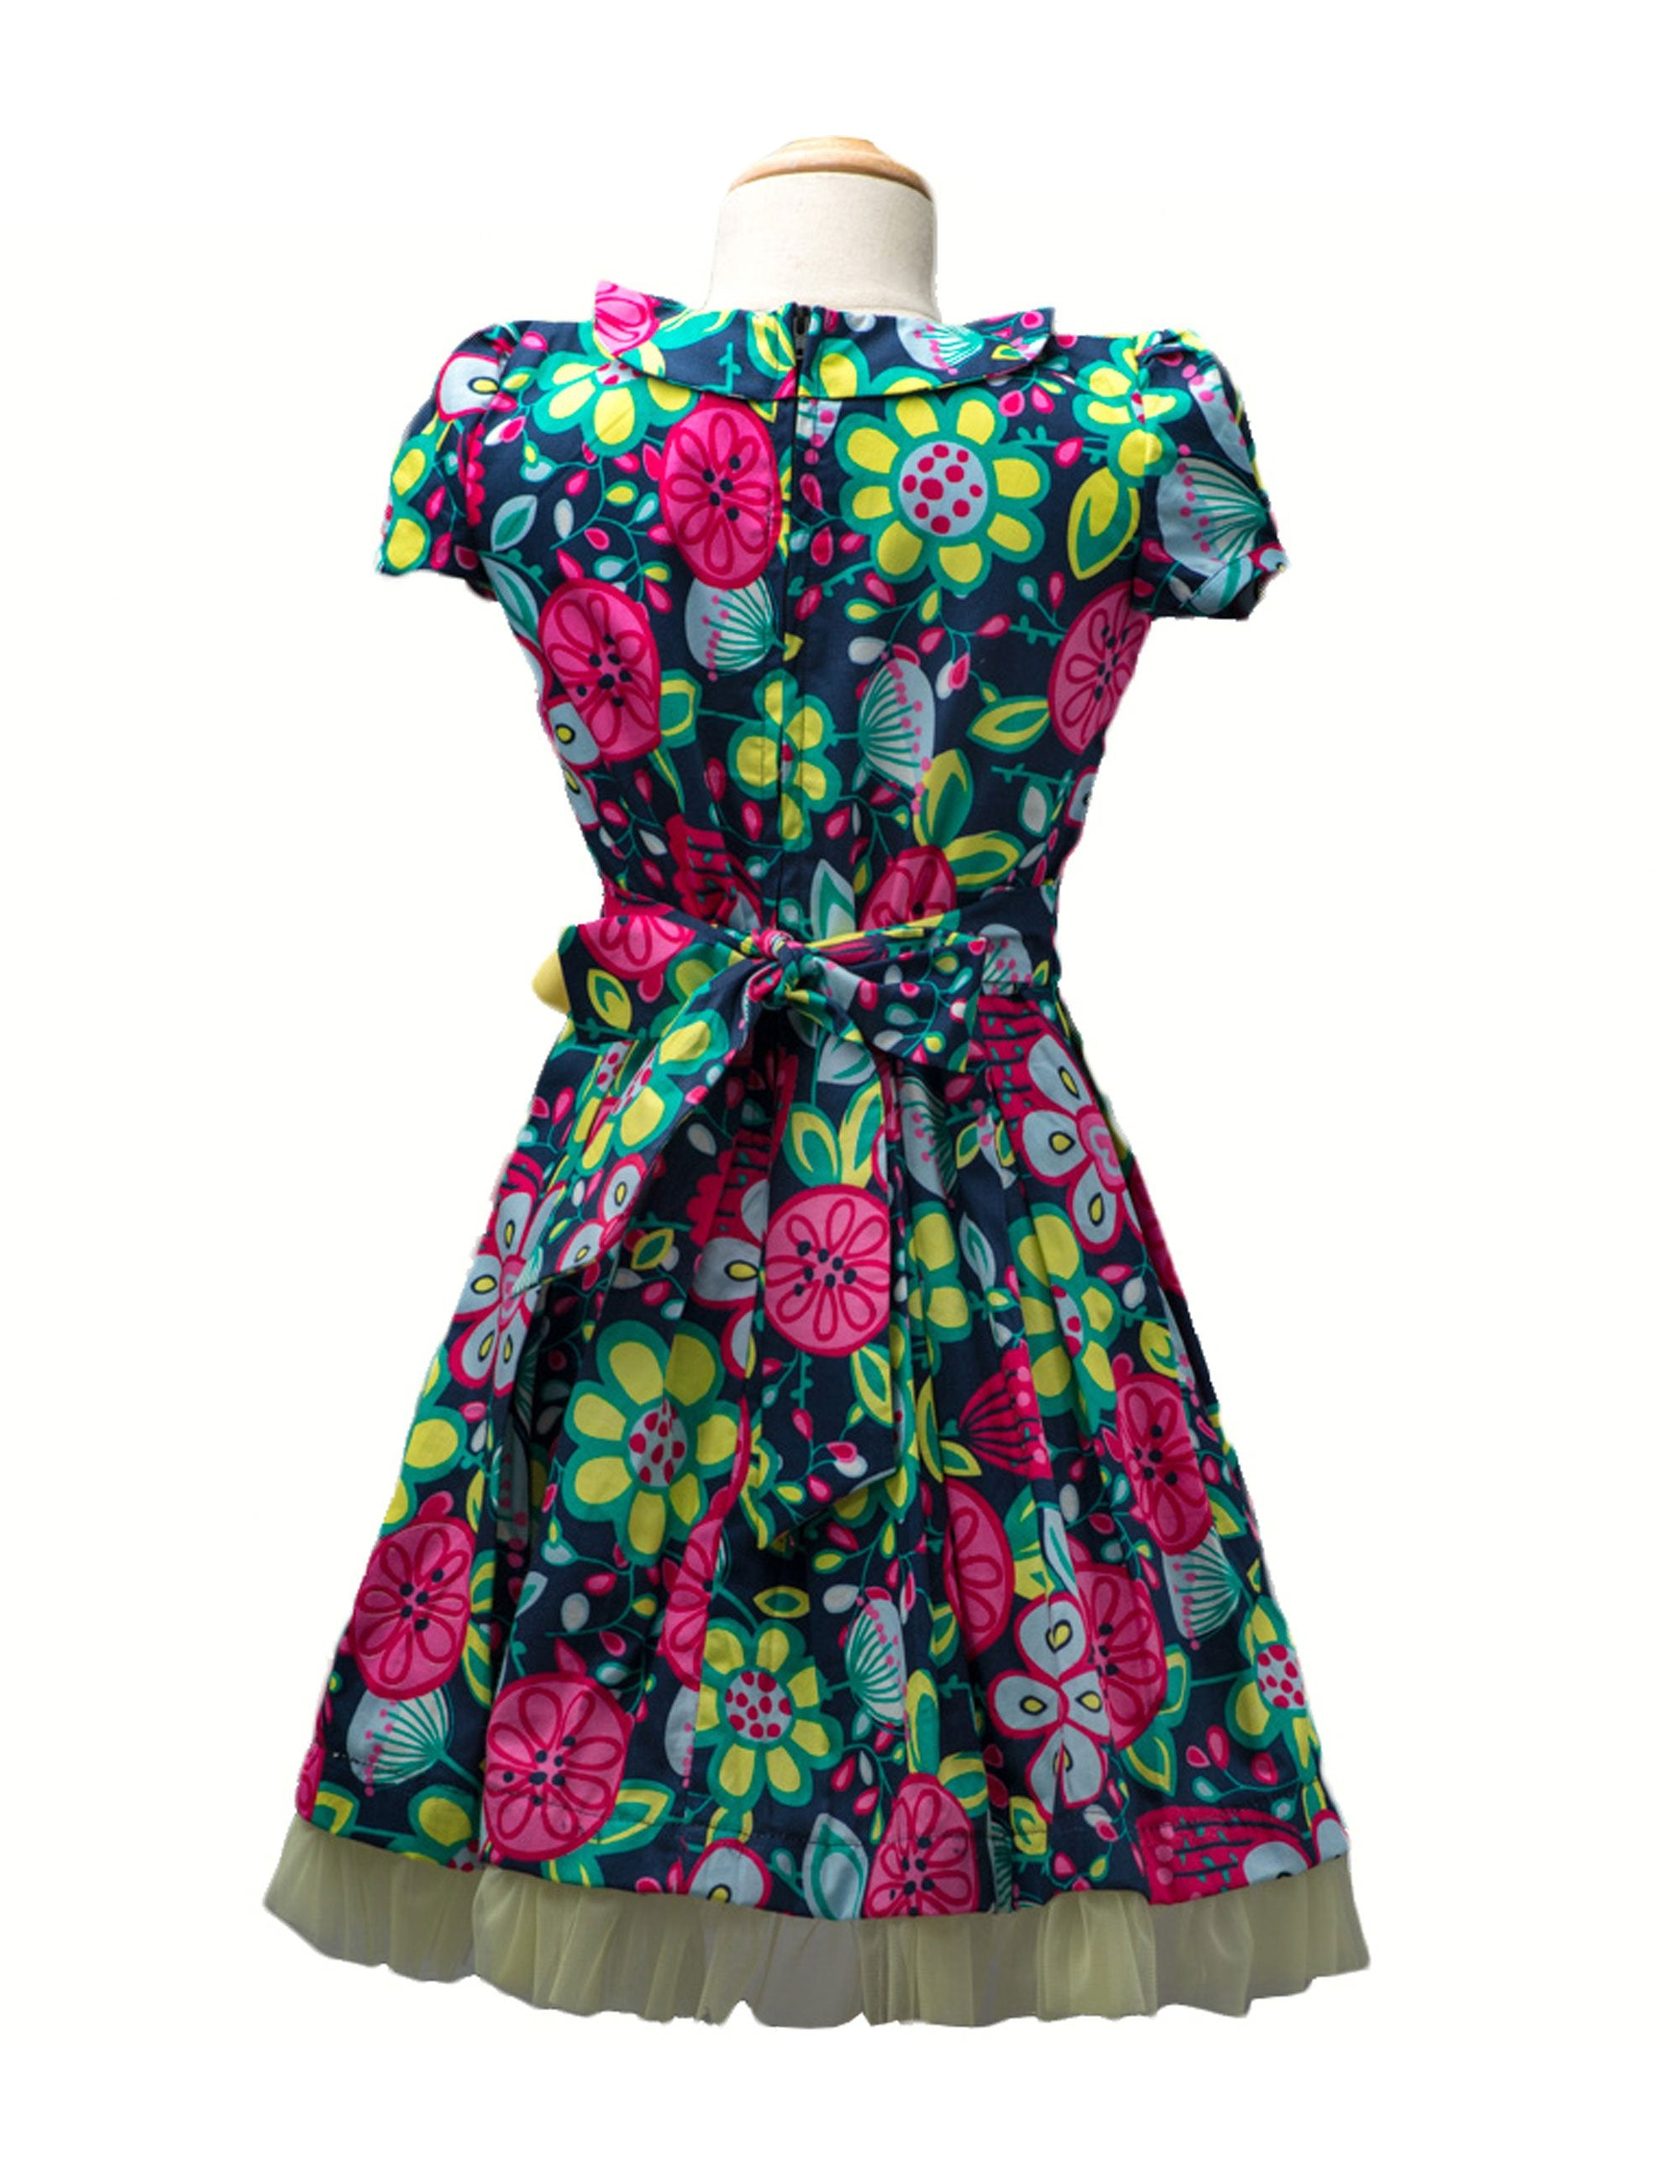 Multi-Coloured Printed Pleated Dress with Yellow Bow for Girls